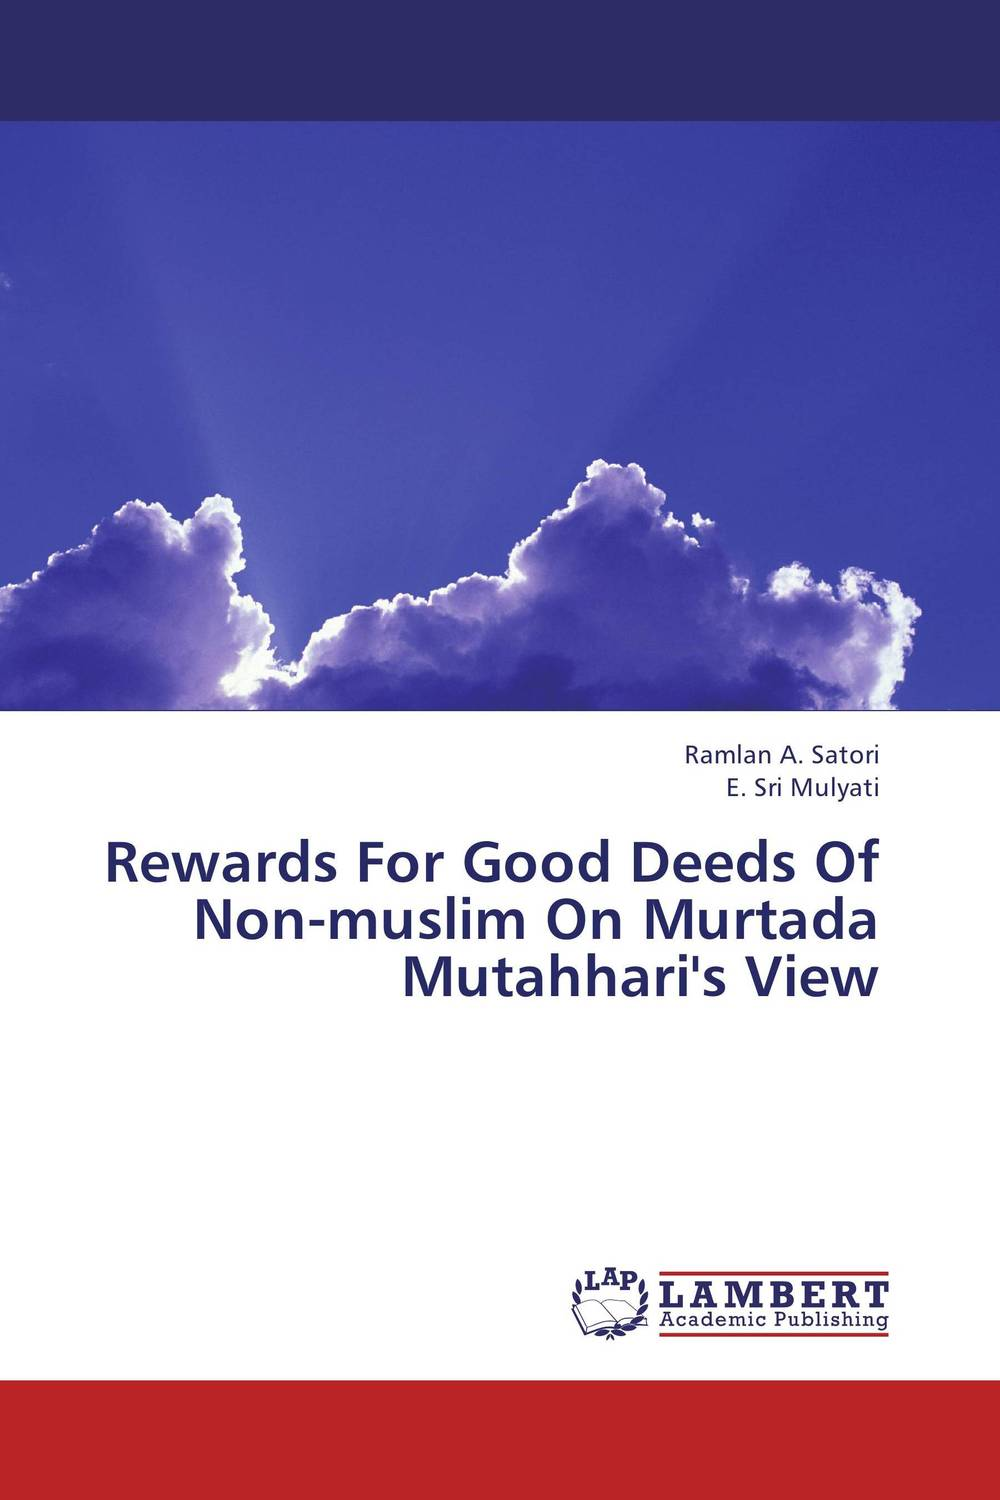 Rewards For Good Deeds Of Non-muslim On Murtada Mutahhari's View футболка для беременных there is only a good mother 00031 2015